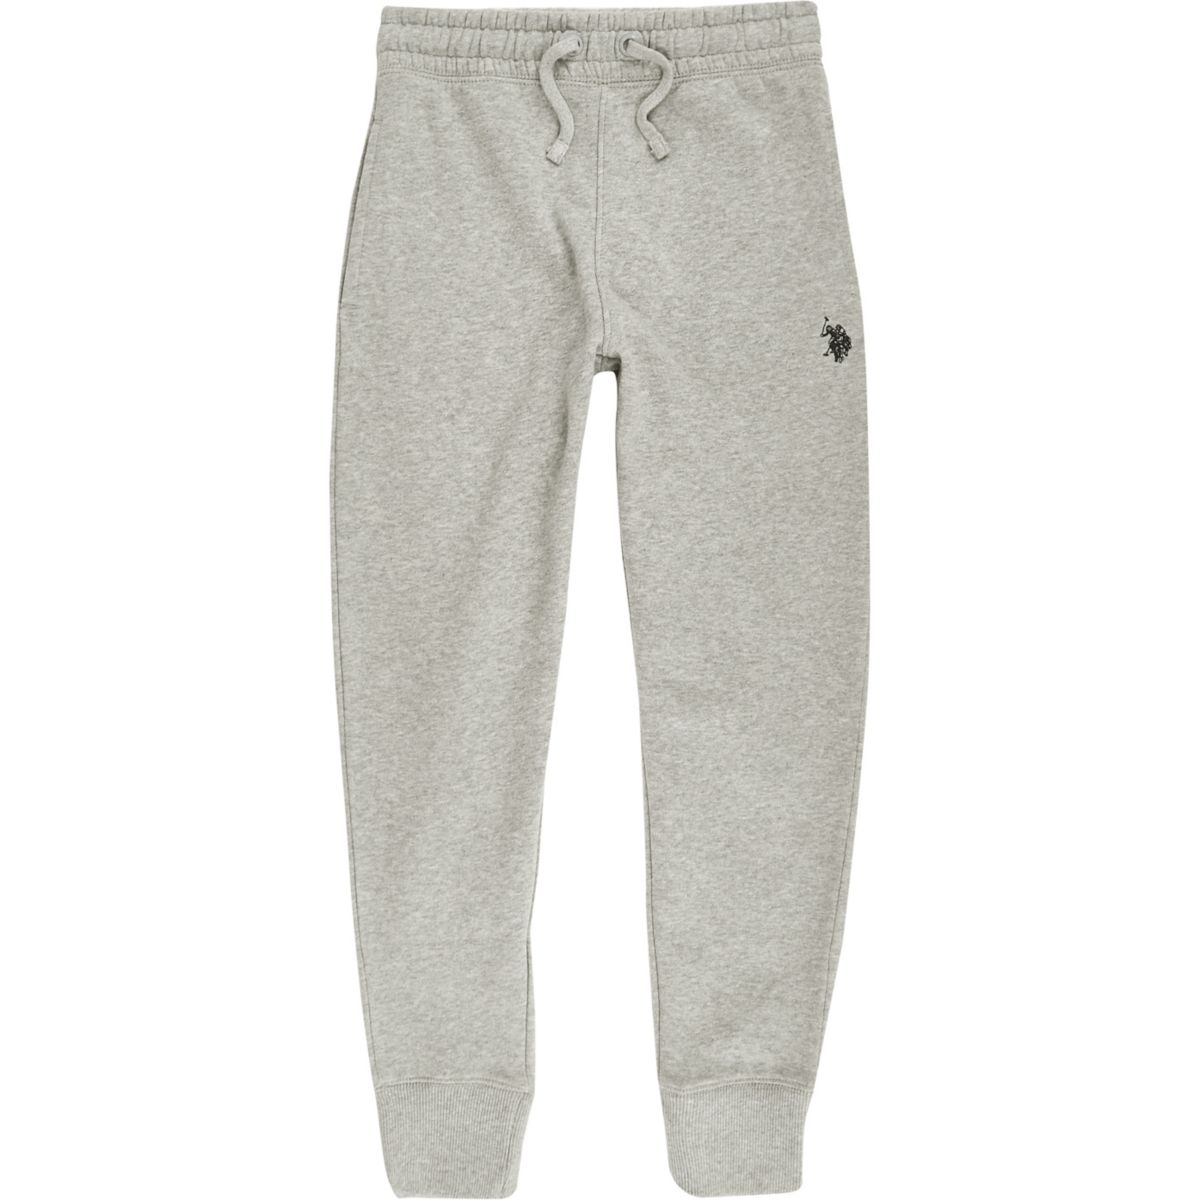 Boys U.S. Polo Assn. grey joggers